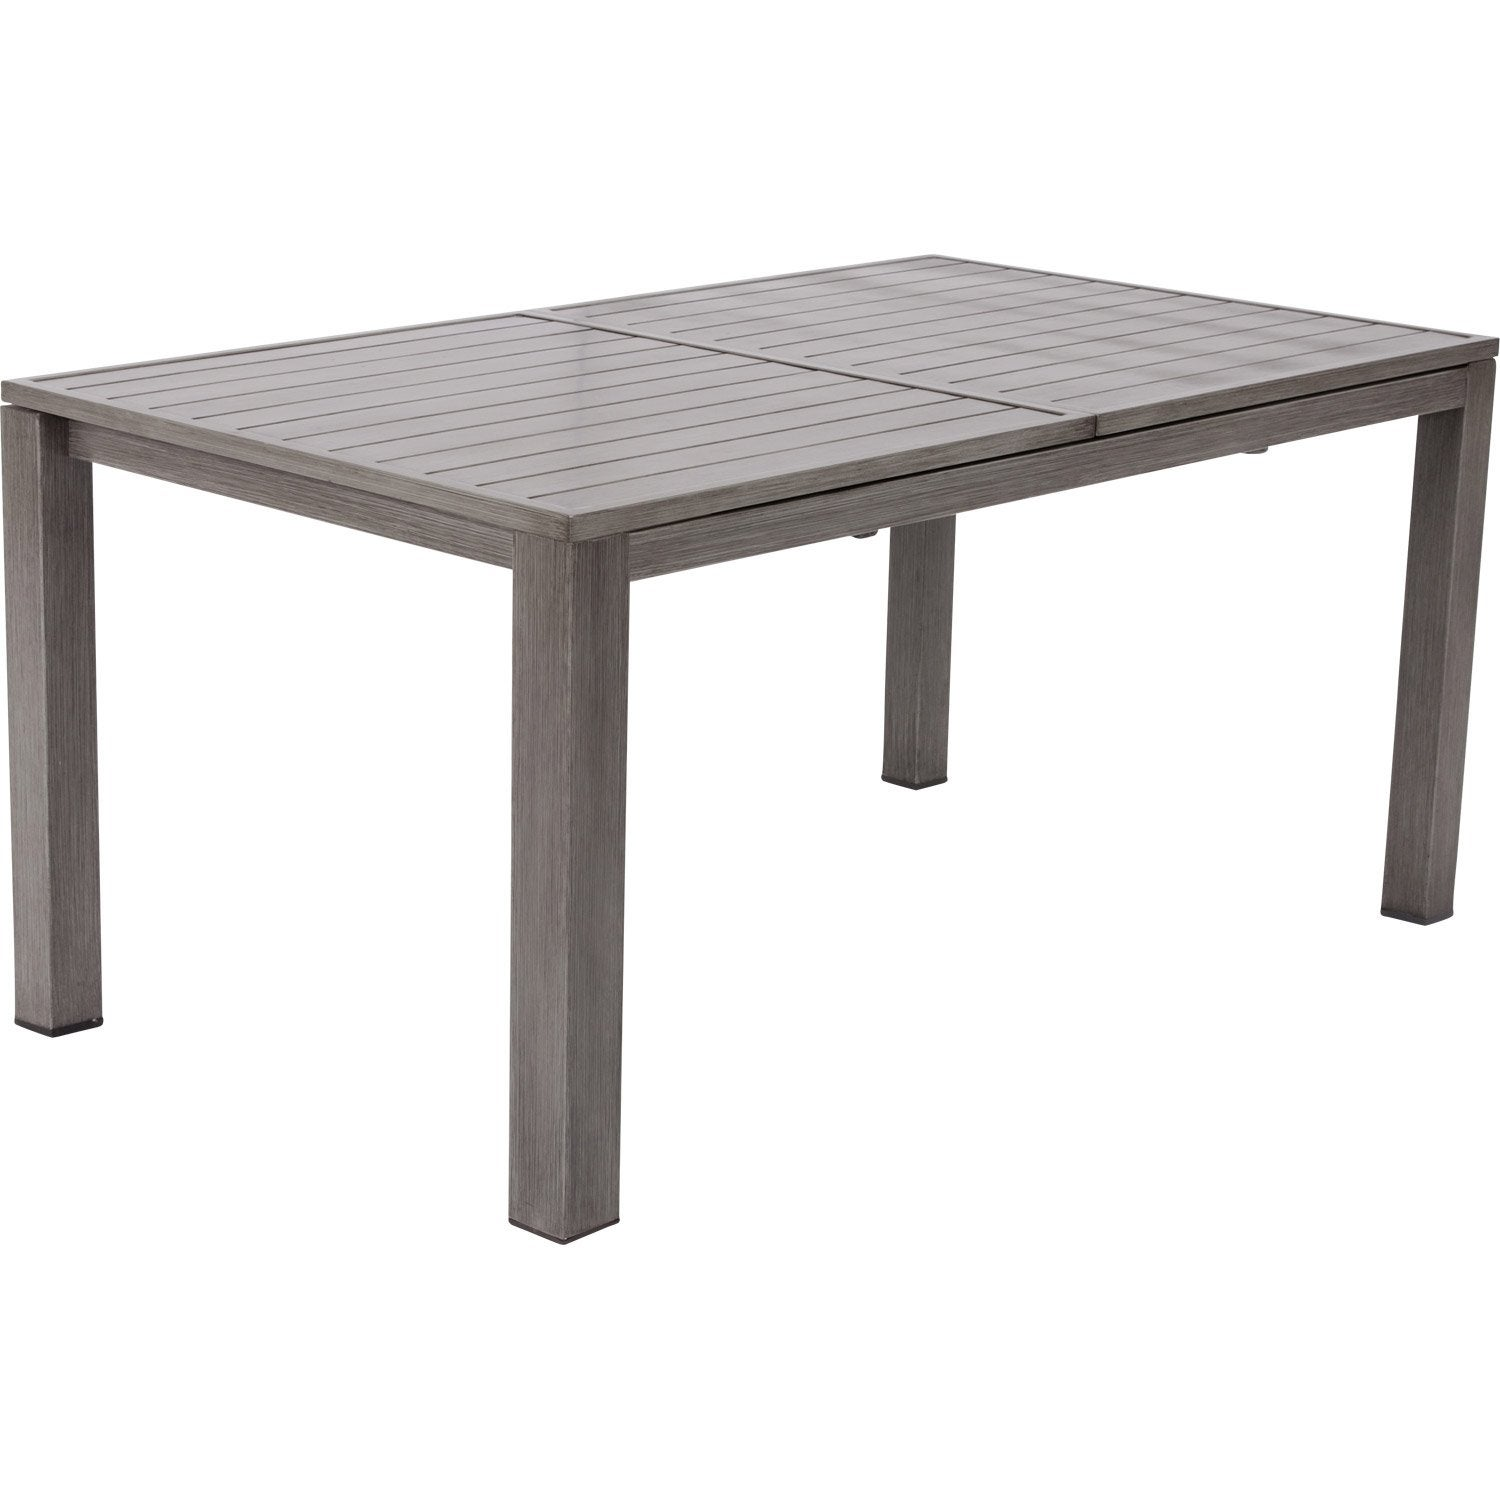 Table de jardin naterial antibes rectangulaire gris look for Table exterieur 3 metres